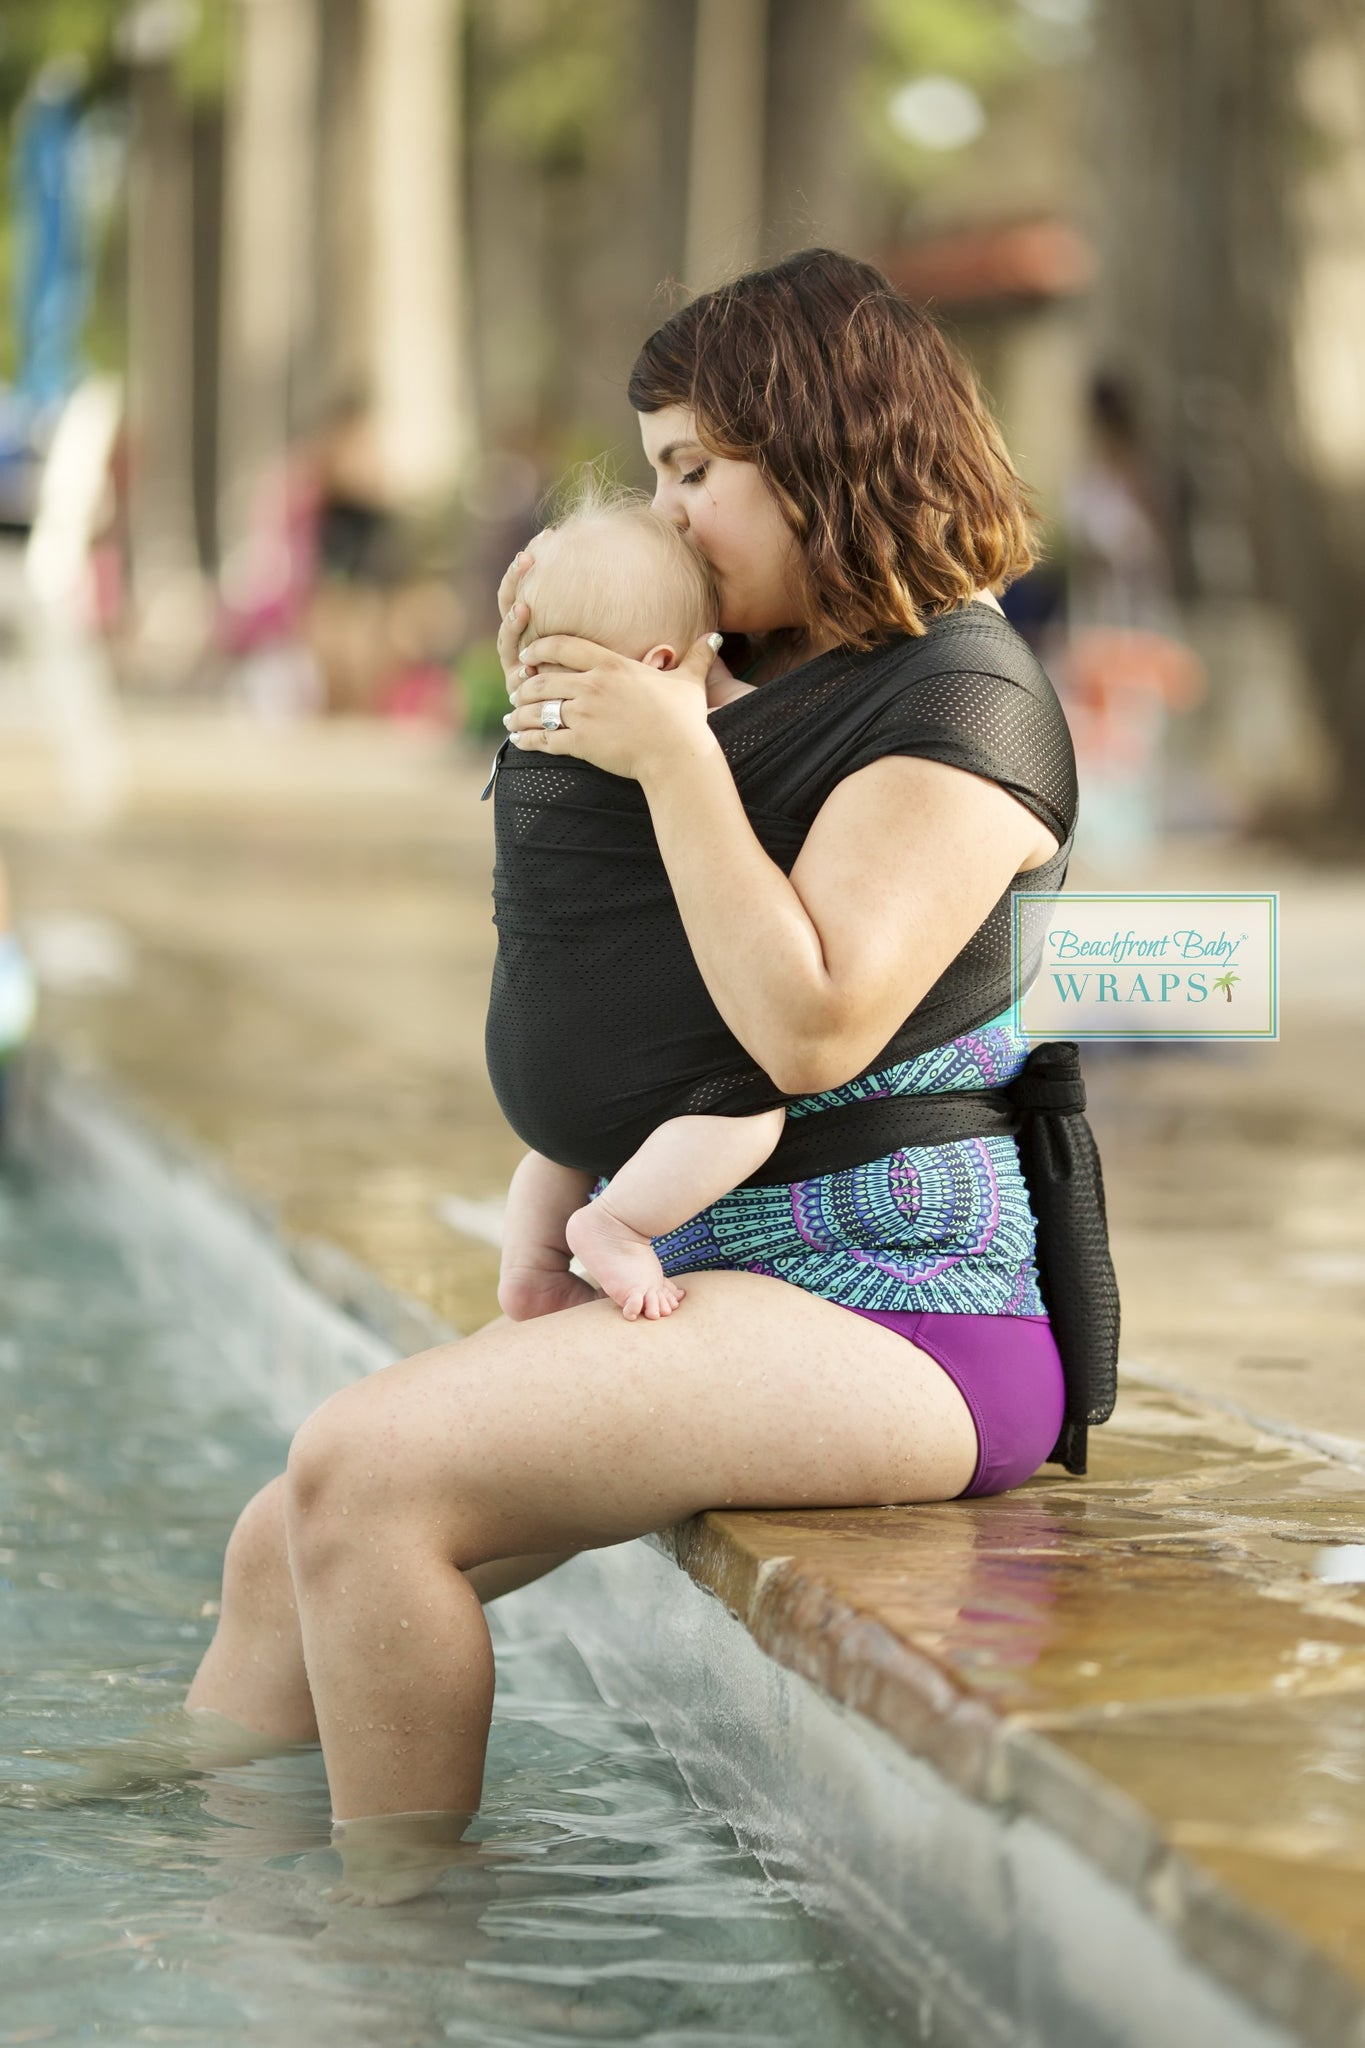 Beachfront Baby One Size Water Wrap - Midnight Sky - Crunch Natural Parenting is where to buy